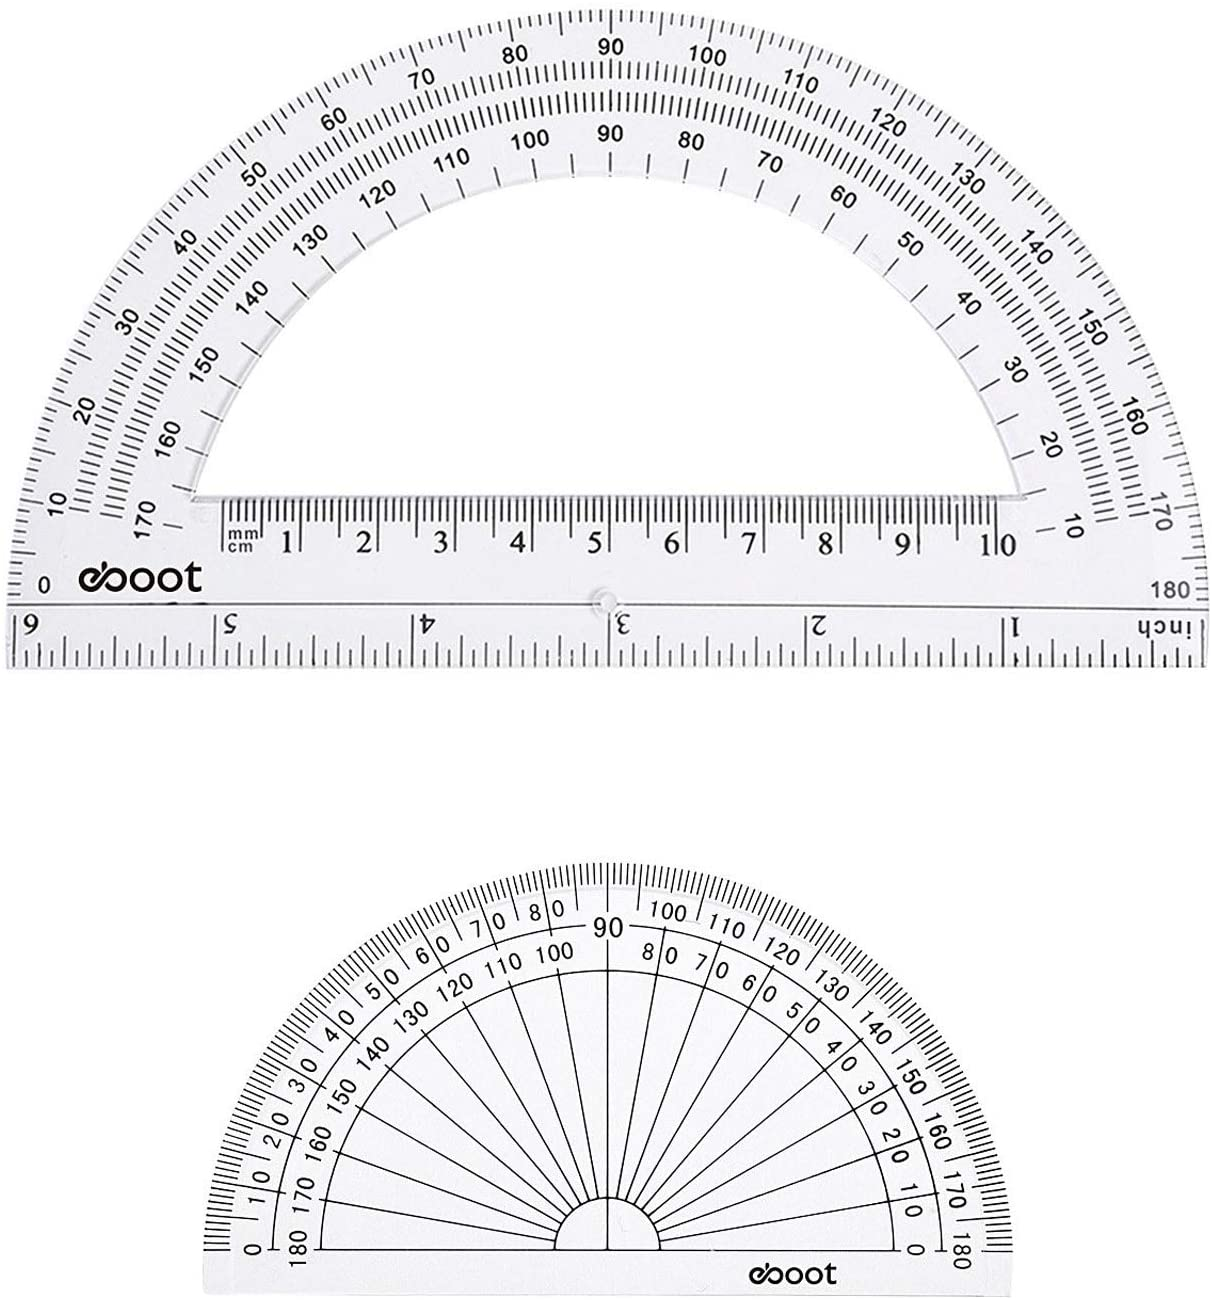 eBoot Plastic Protractor 180 Degree, 4 Inch and 6 Inch, Clear, 2 Pieces : Office Products